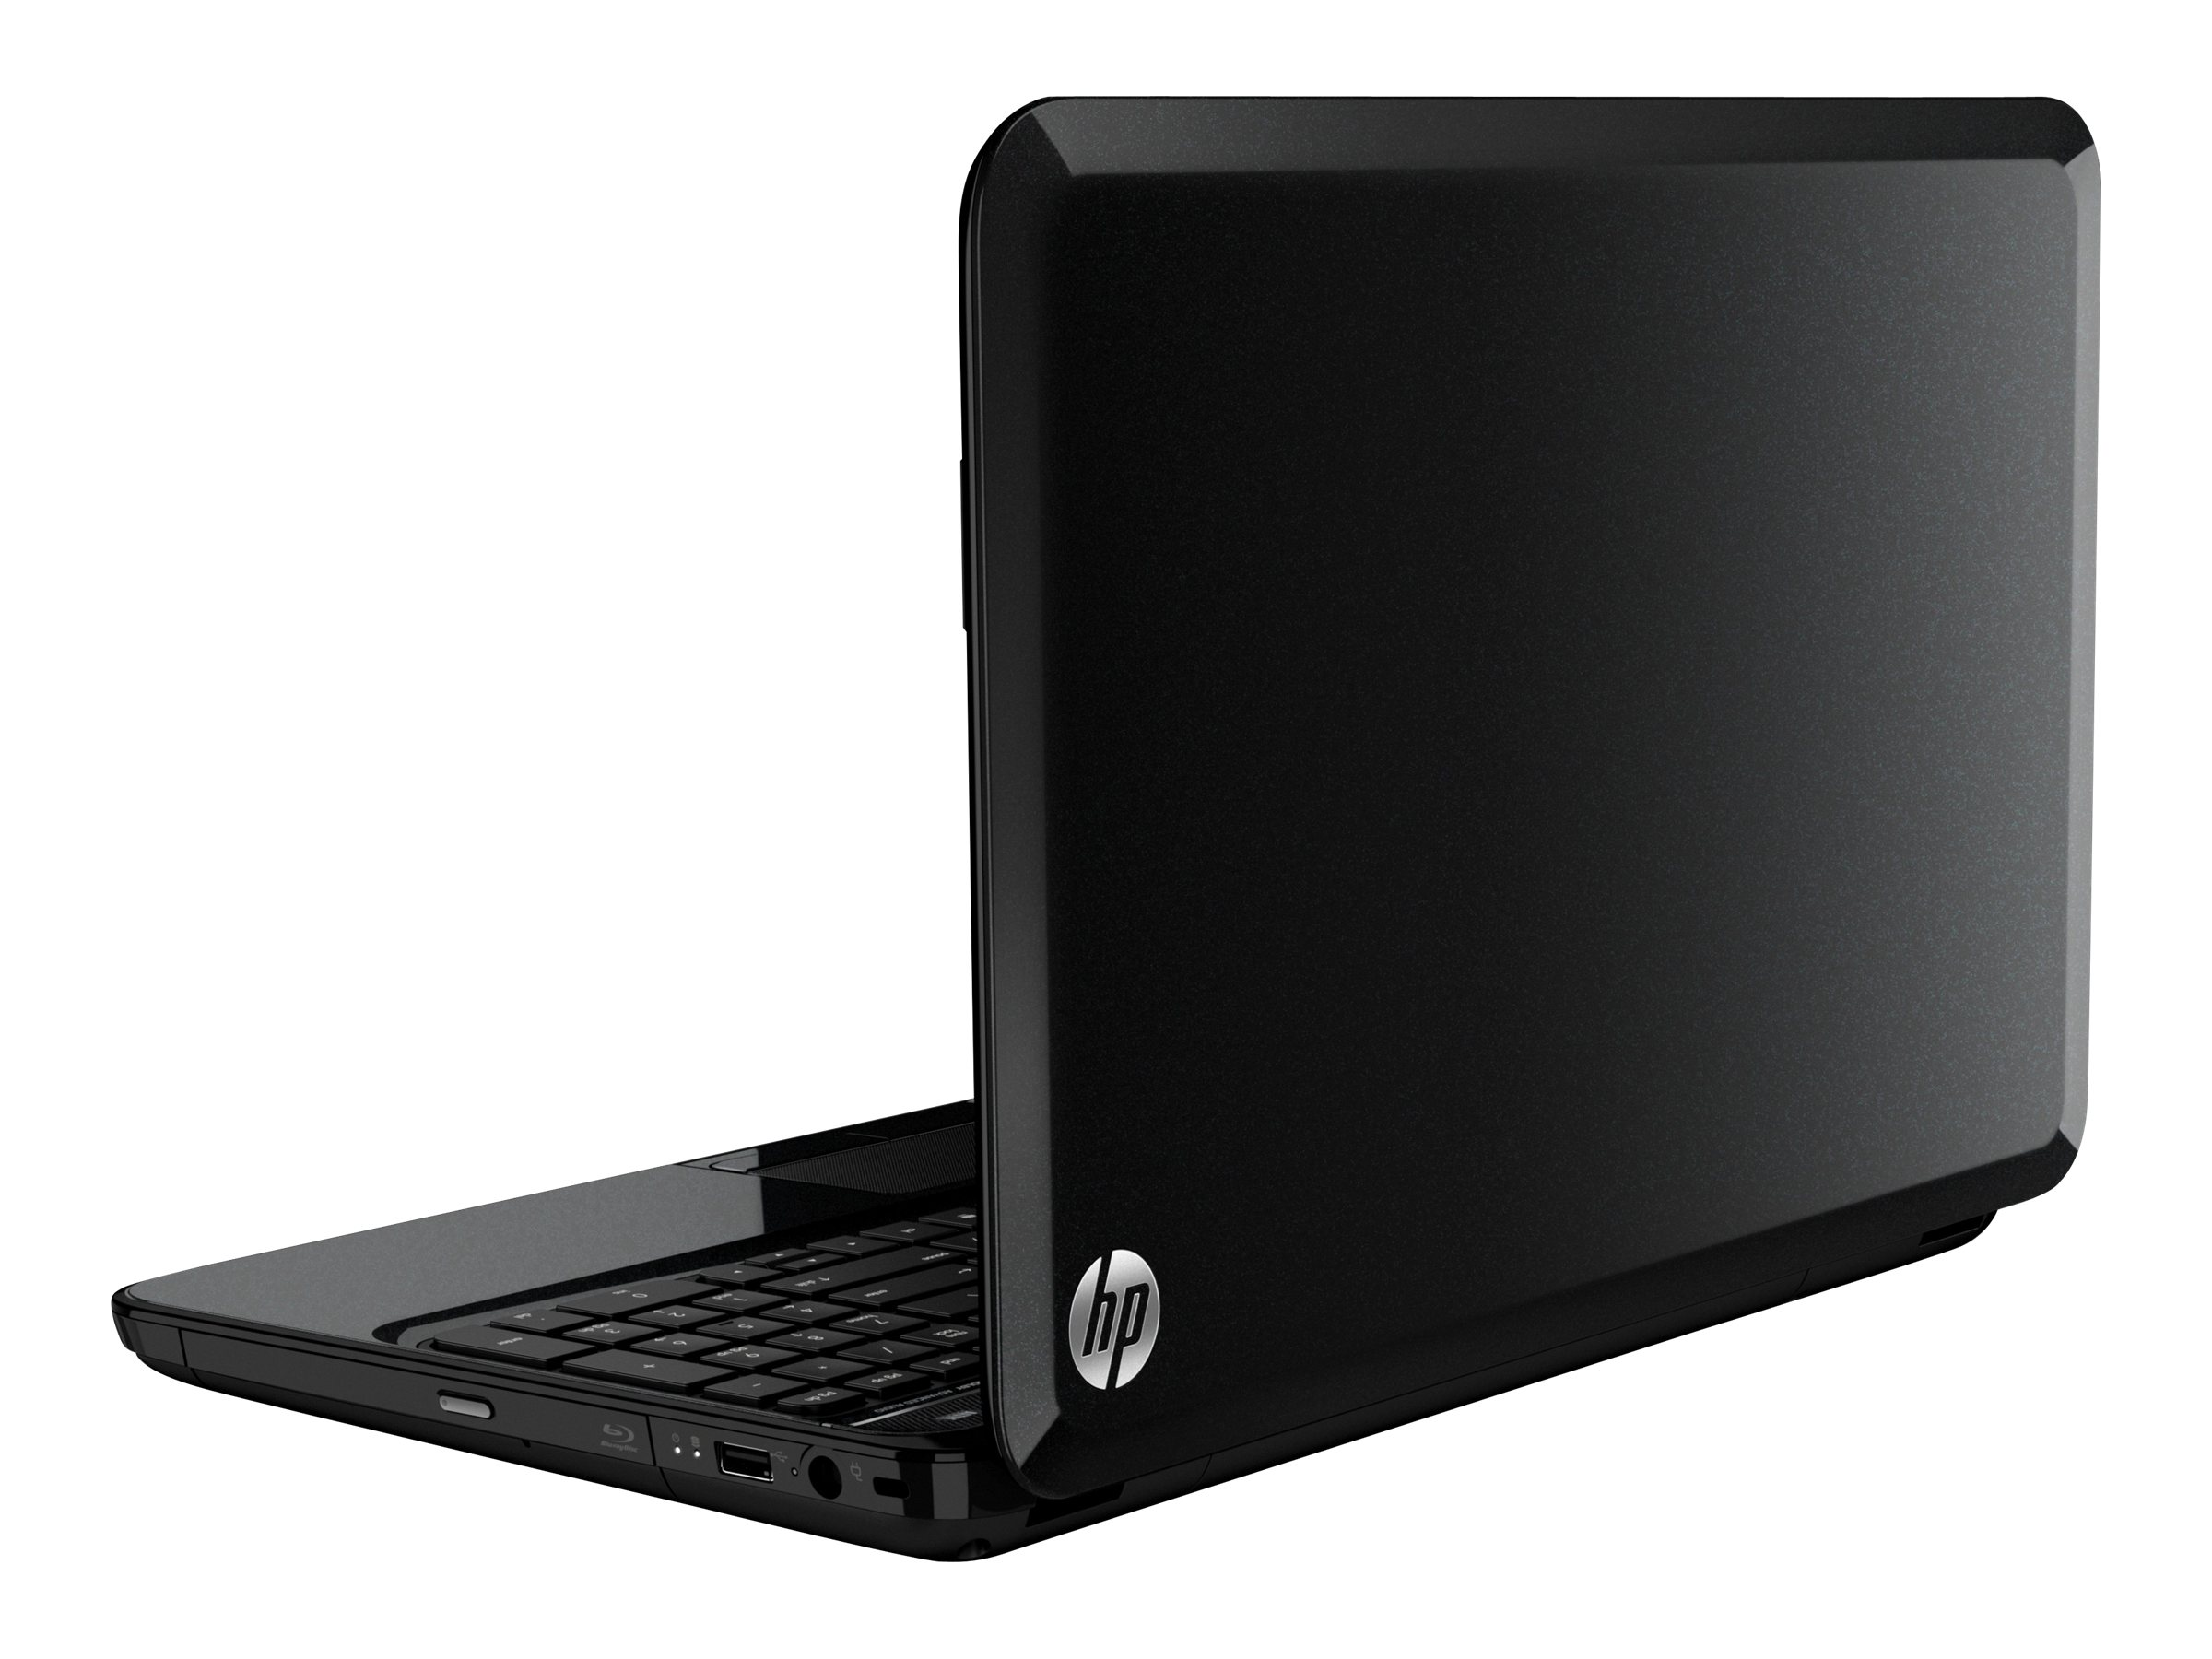 HP Pavilion G6-2311nr 2.5GHz A4-Series 15.6in display, D8X87UA#ABA